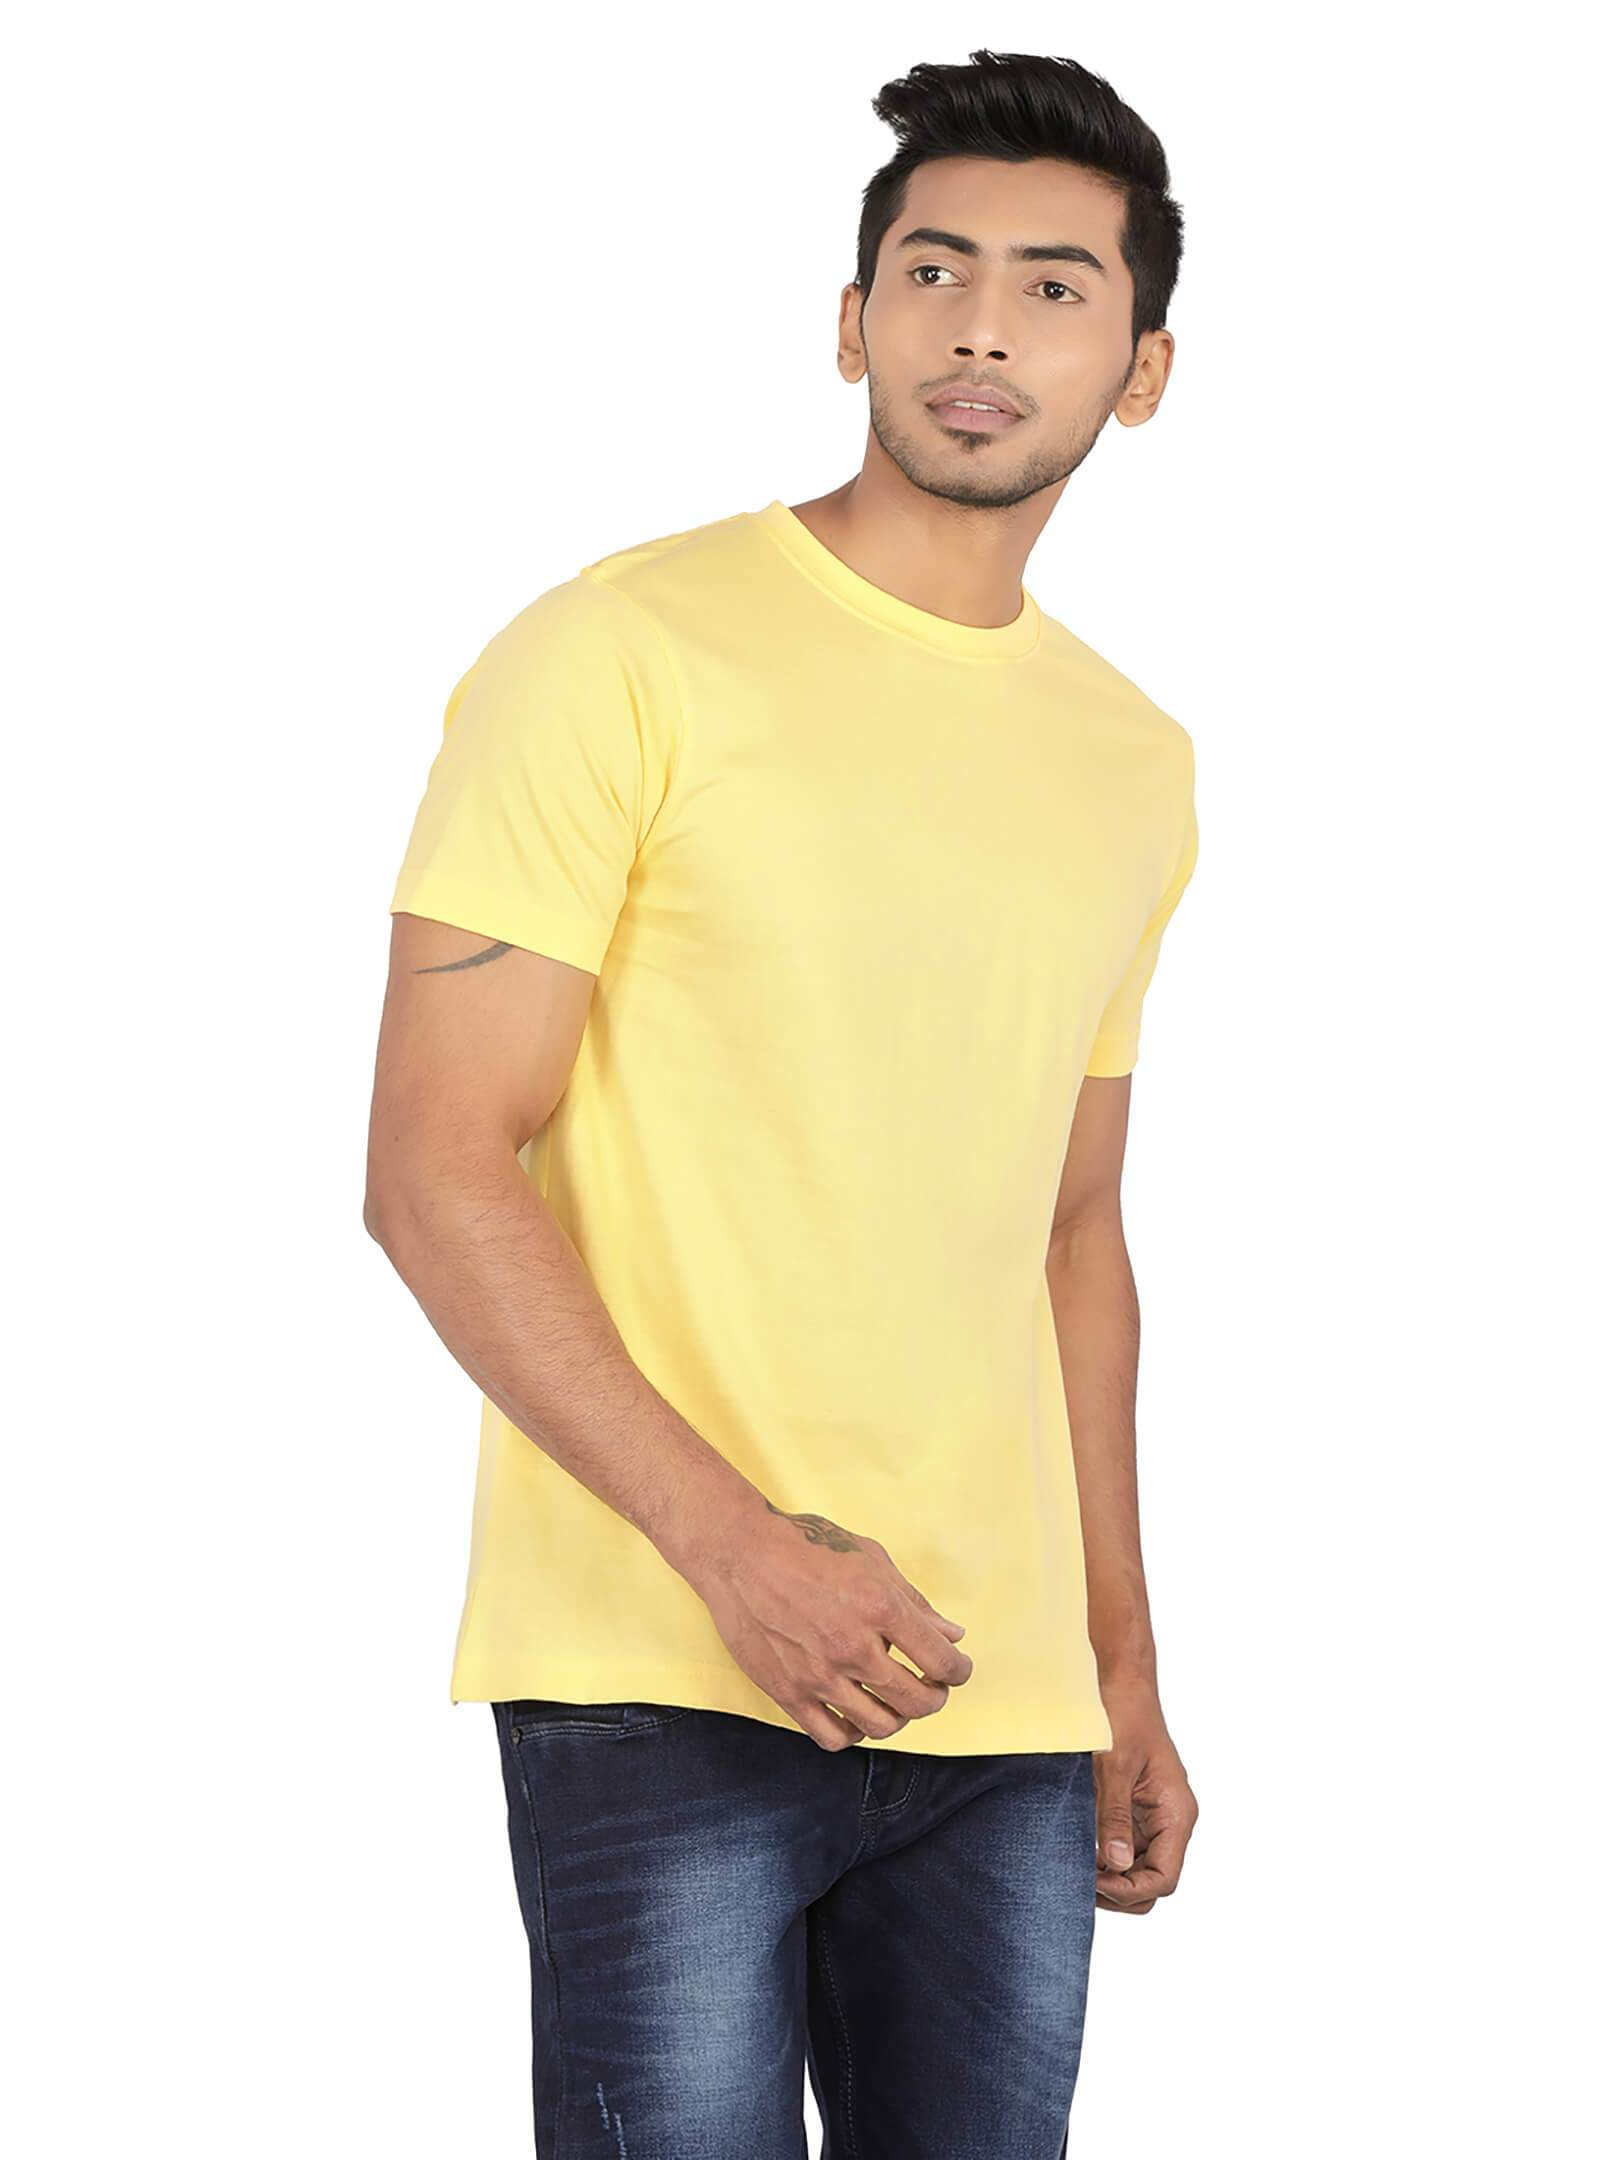 Amrak Men's Round Neck T-Shirt - Plain Yellow